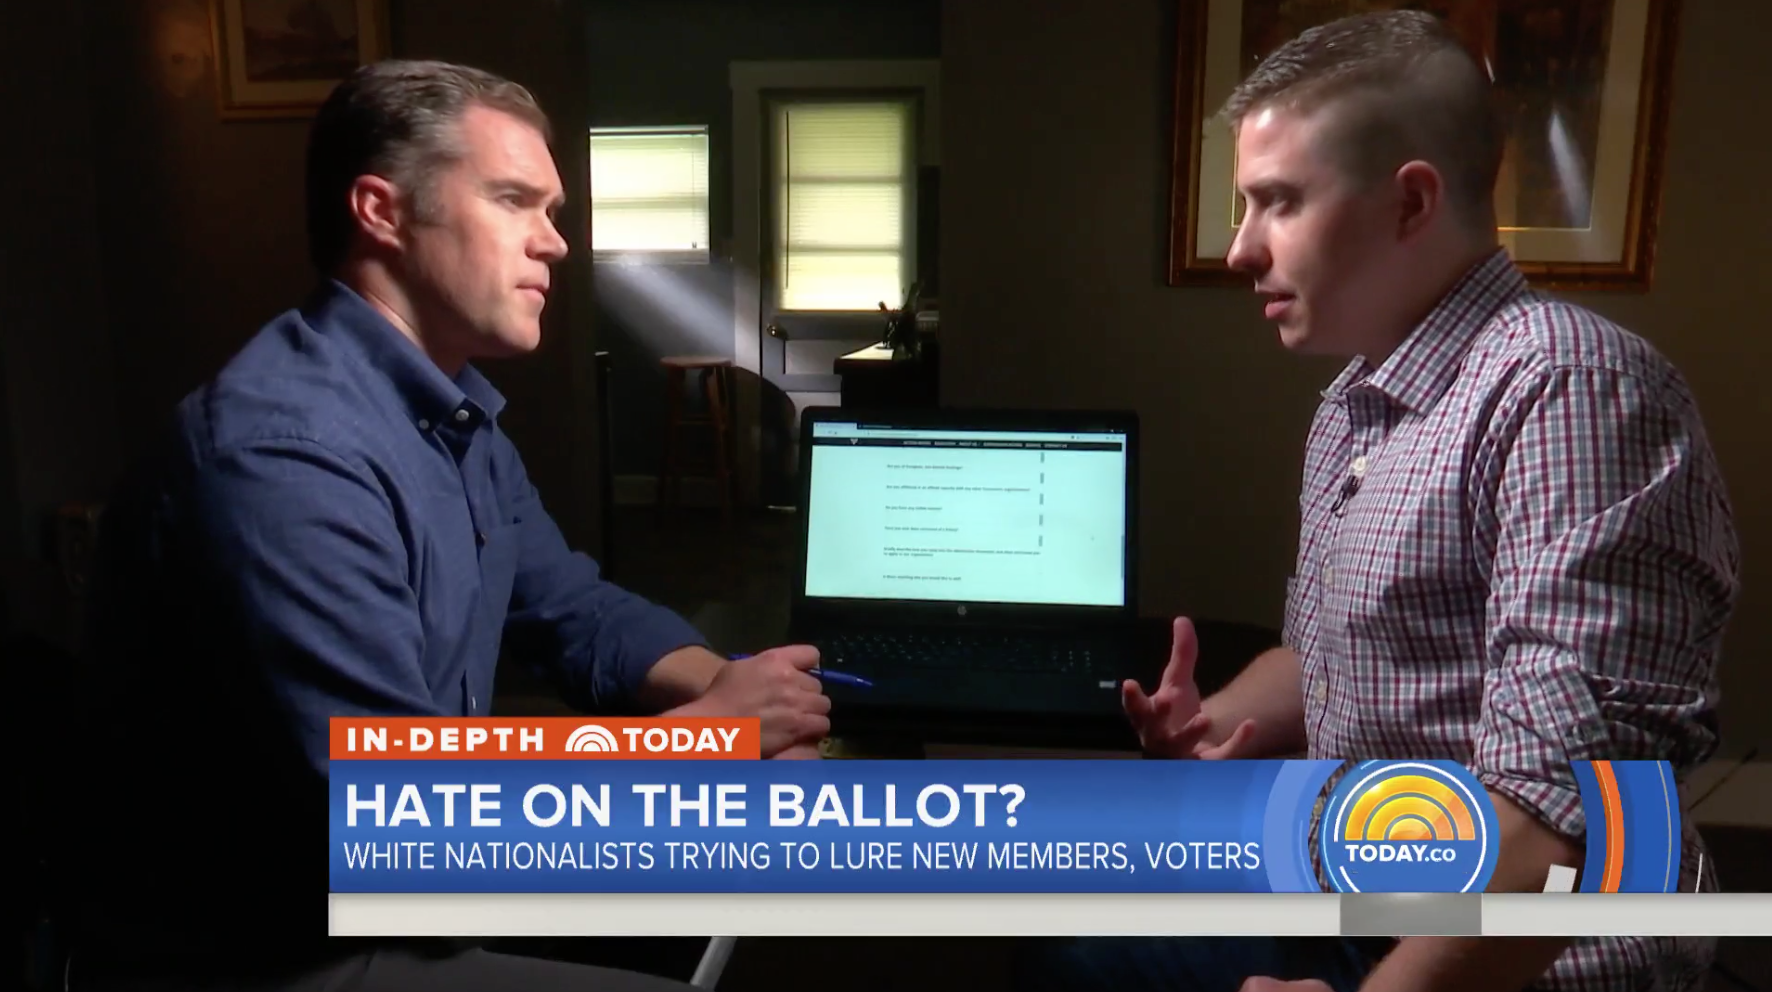 NBC Today show host Peter Alexander interviewing Patrick Casey of White Hate Group Identity Europa on segment that aired October 17th